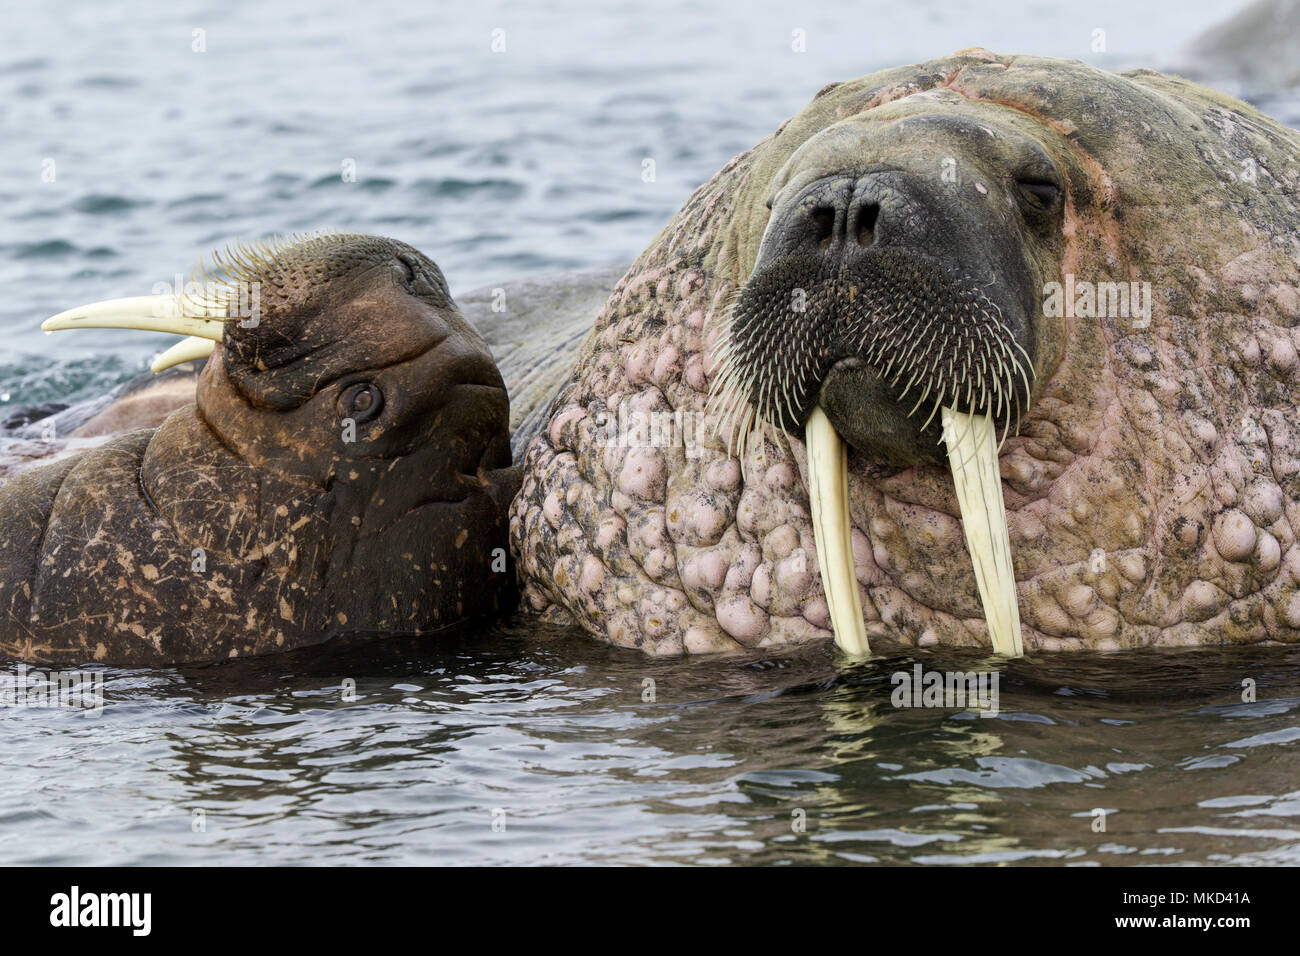 Pair of Atlantic walrus (Odobenus rosmarus), one adult and one younger playing with their tusks, Vulnerable (IUCN), Spitsbergen, Svalbard, Norwegian archipelago, Norway, Arctic Ocean - Stock Image